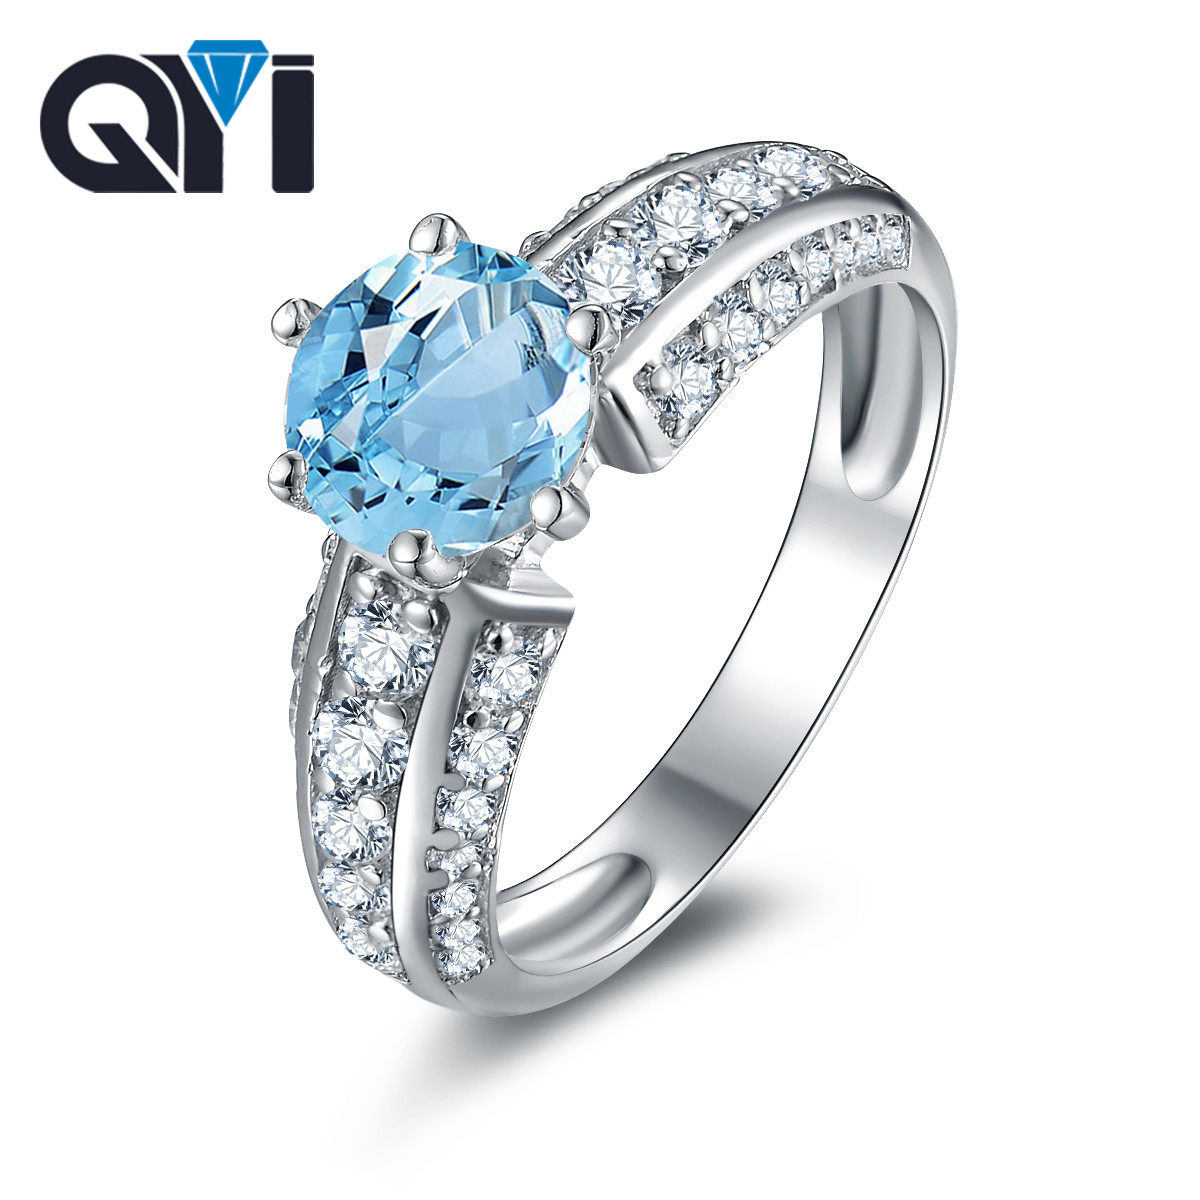 QYI 925 Sterling Silver Natural Sky Blue Topaz Rings Luxury 1.25 Ct Topaz Jewelry for Women Gemstone Engagement RingQYI 925 Sterling Silver Natural Sky Blue Topaz Rings Luxury 1.25 Ct Topaz Jewelry for Women Gemstone Engagement Ring